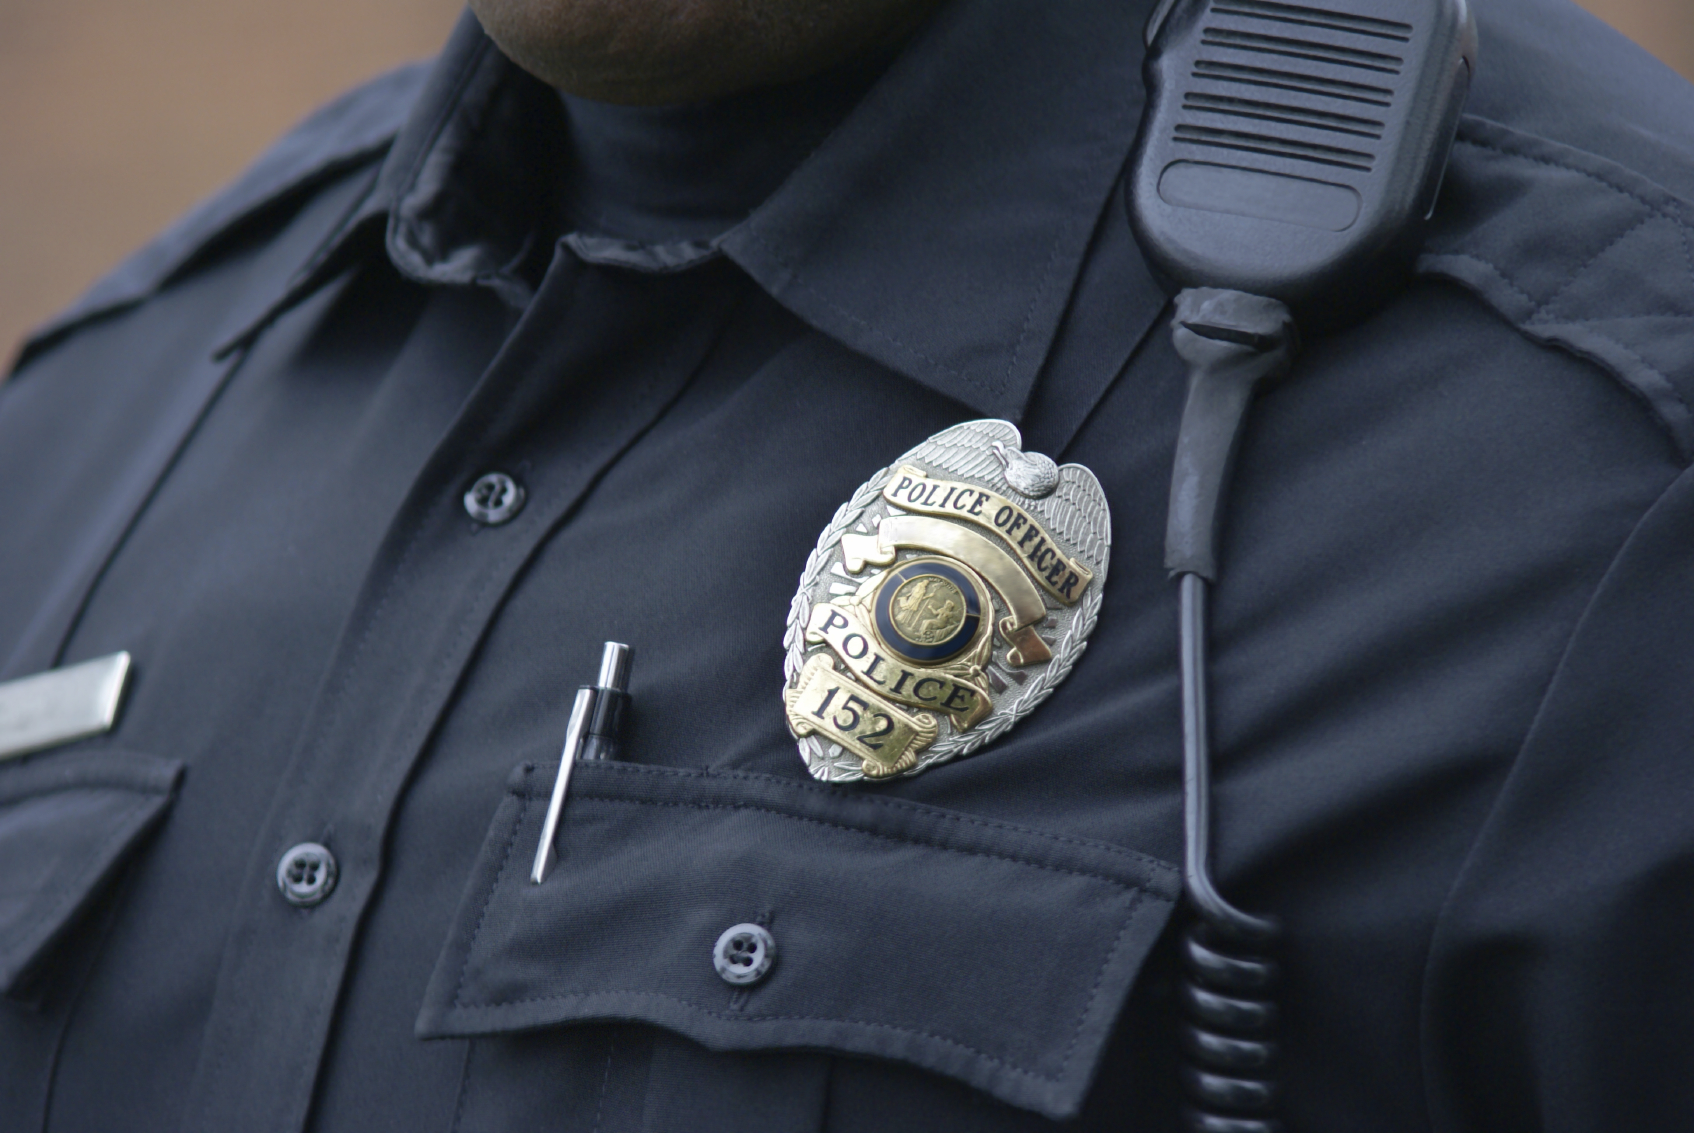 7 Ways Police Will Break The Law Threaten Or Lie To You